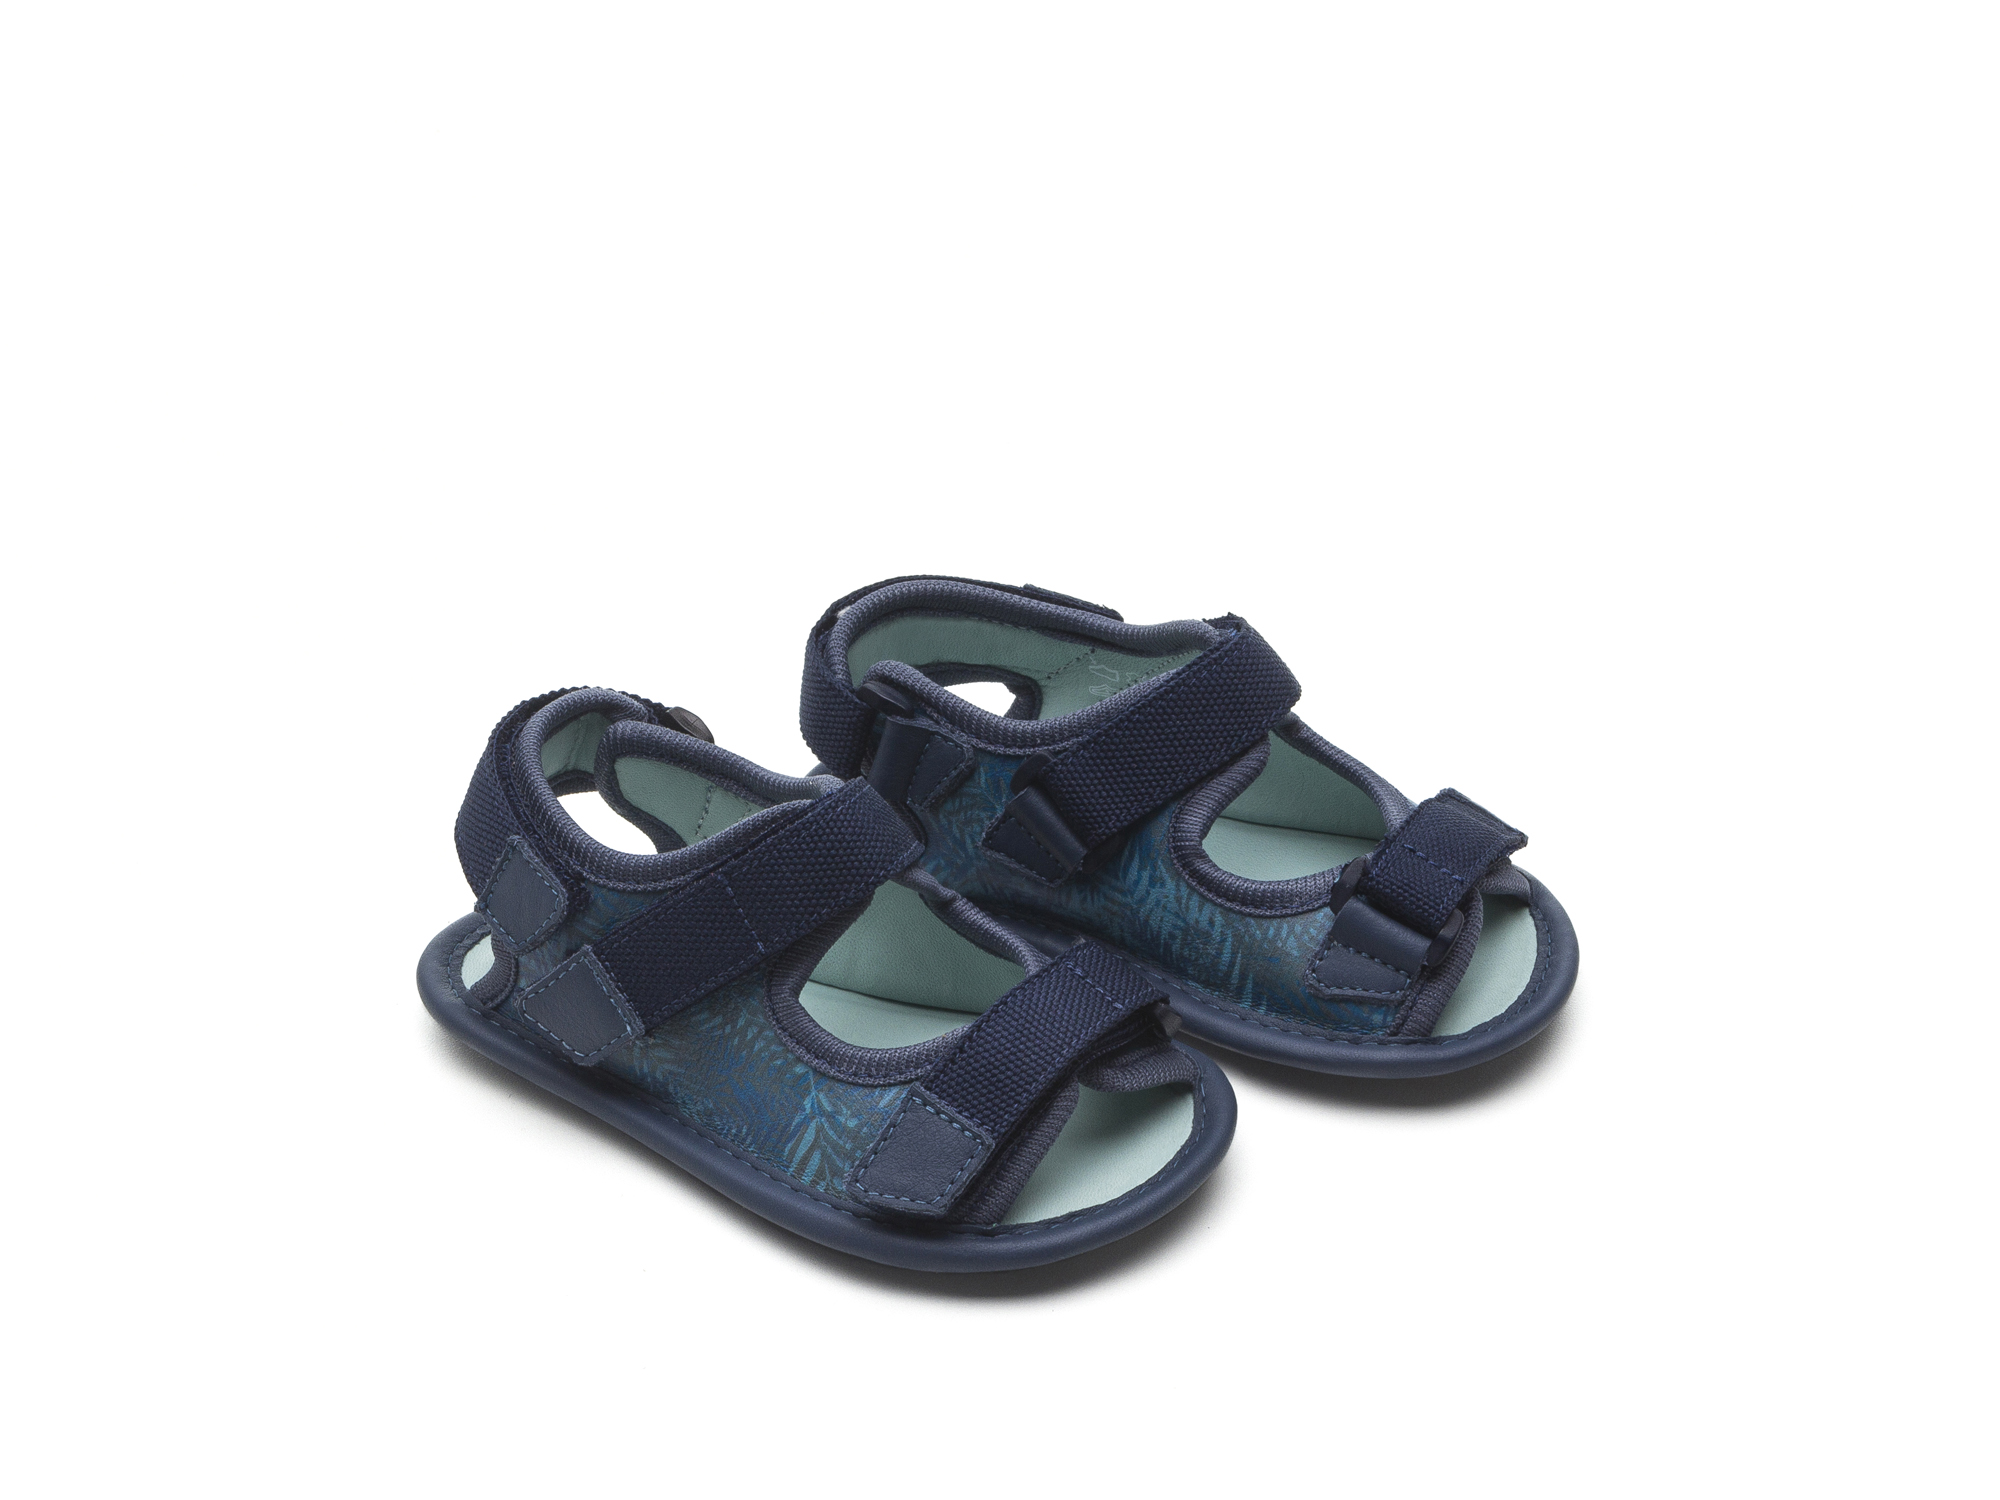 Sandal Boardy Blue Palm/ Rustic Blue Baby for ages 0 to 2 years - 0